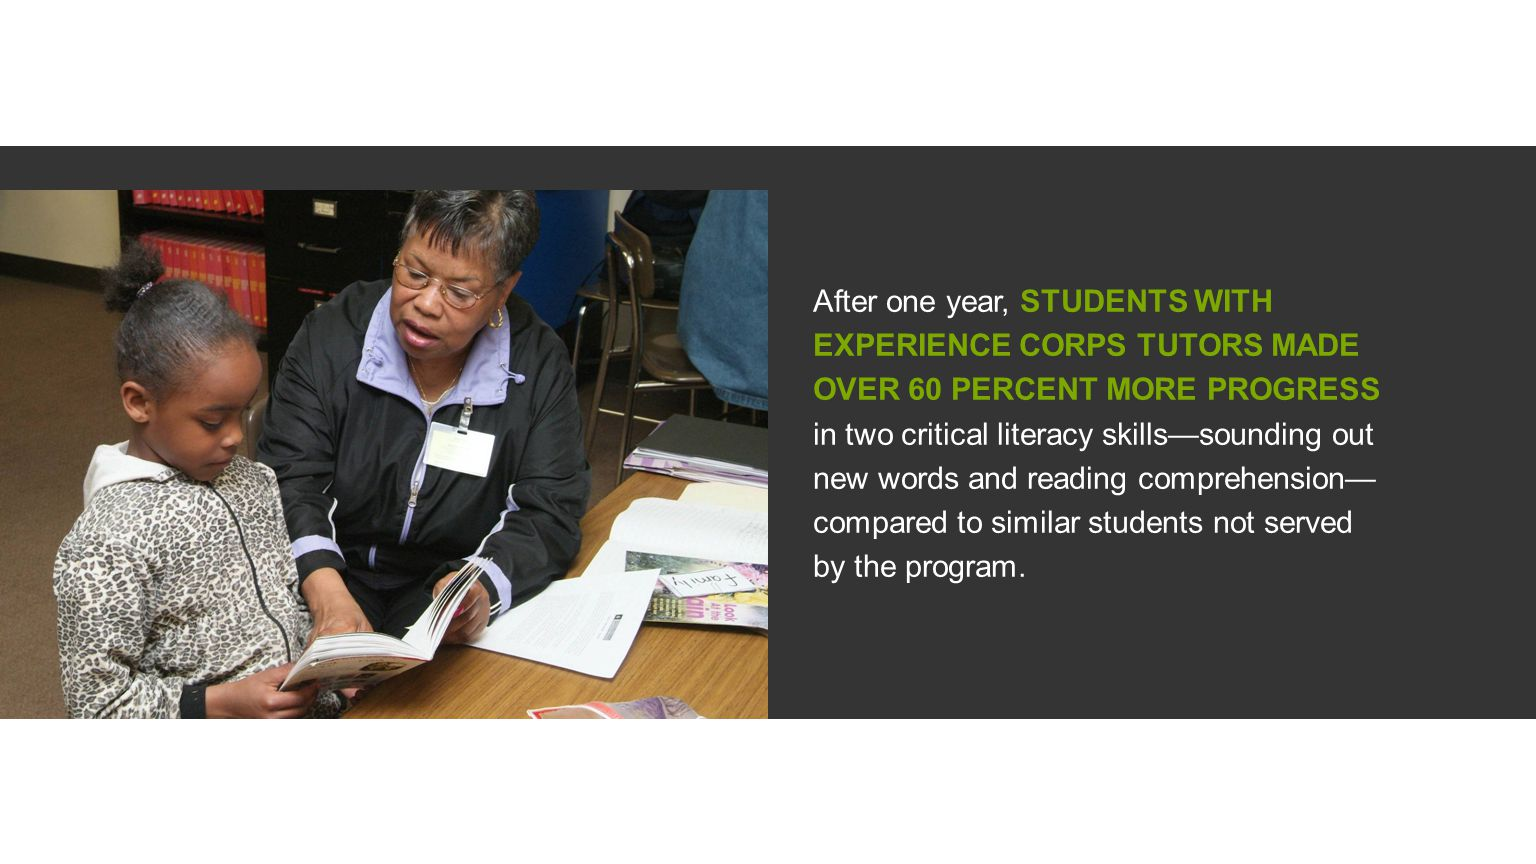 After one year, STUDENTS WITH EXPERIENCE CORPS TUTORS MADE OVER 60 PERCENT MORE PROGRESS in two critical literacy skills—sounding out new words and reading comprehension— compared to similar students not served by the program.